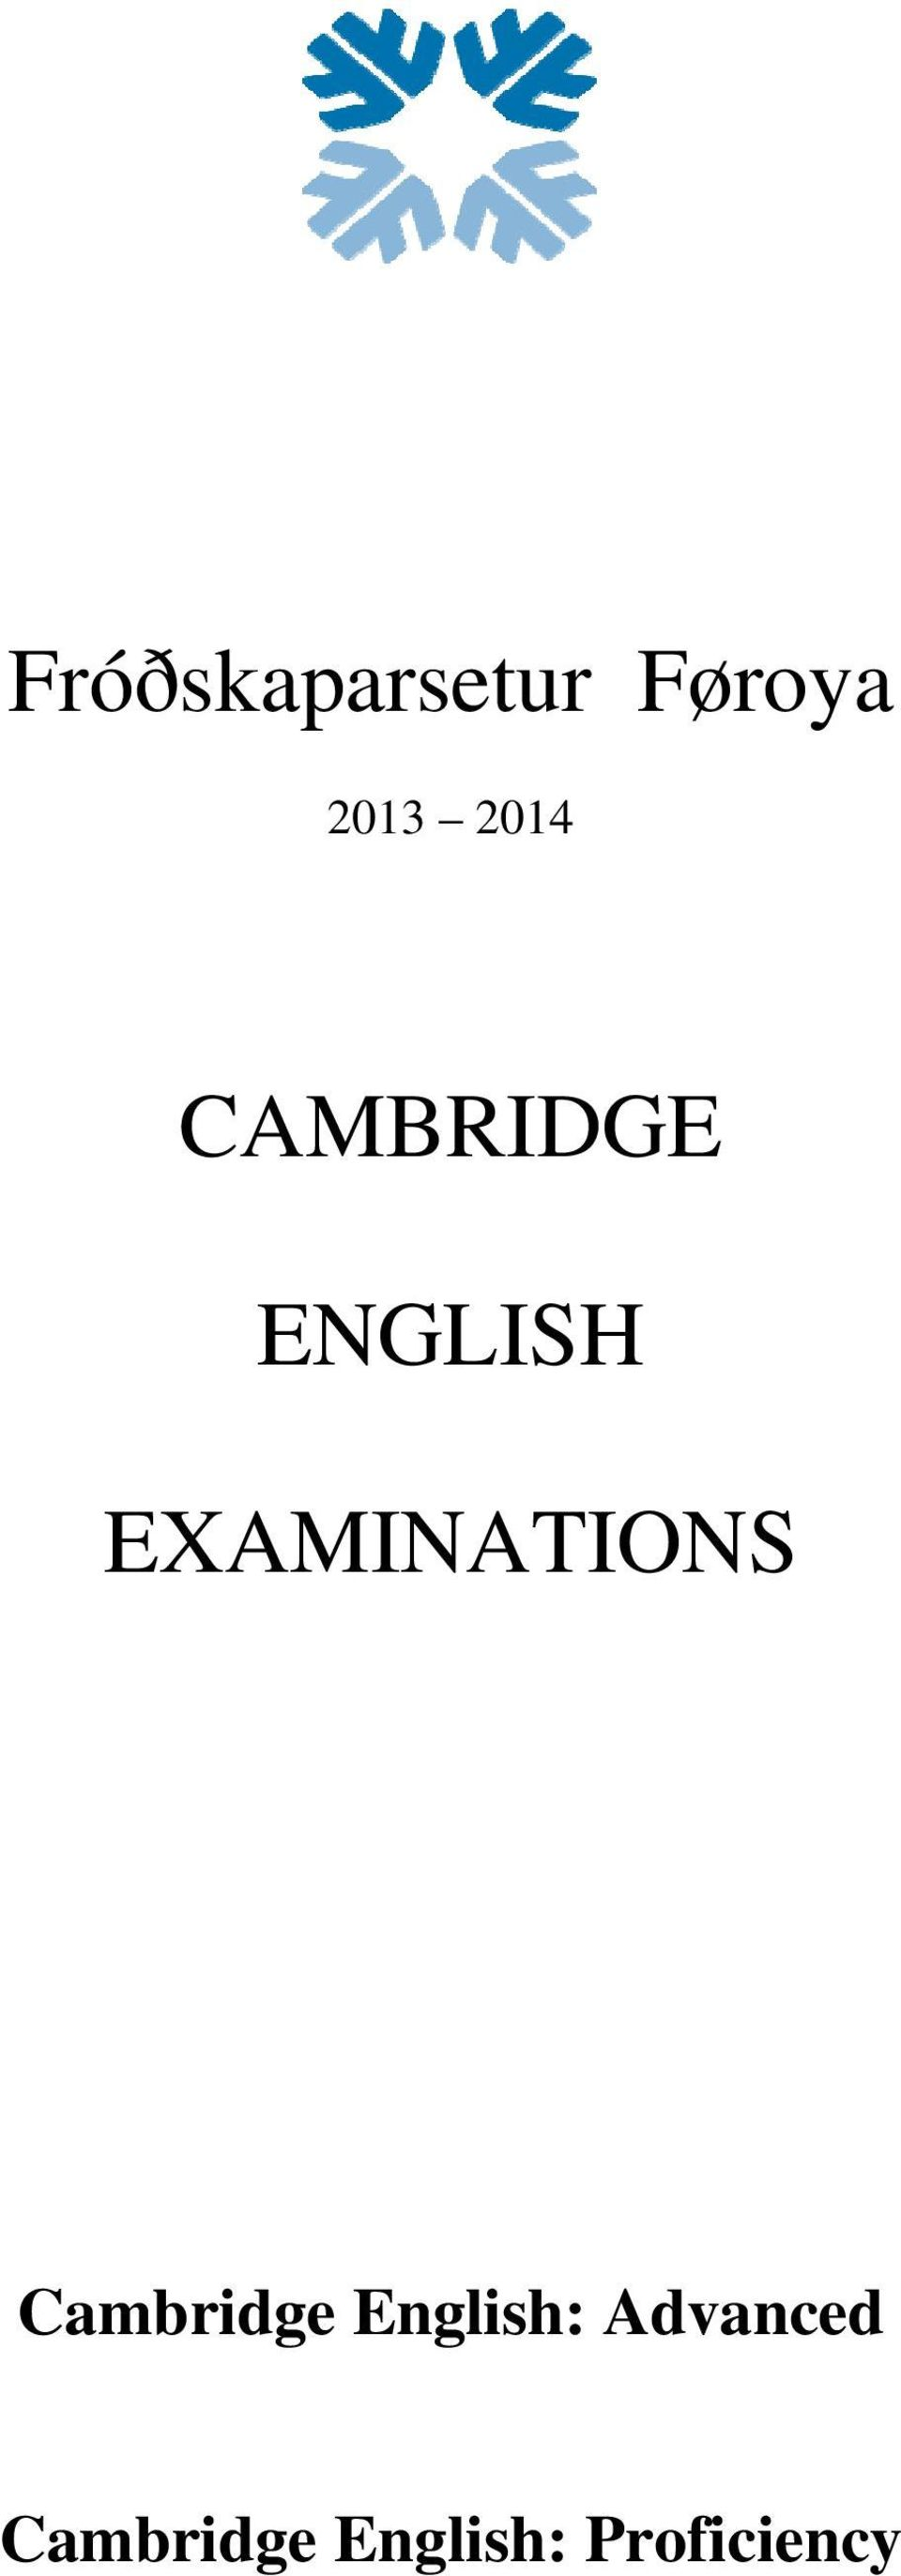 EXAMINATIONS Cambridge